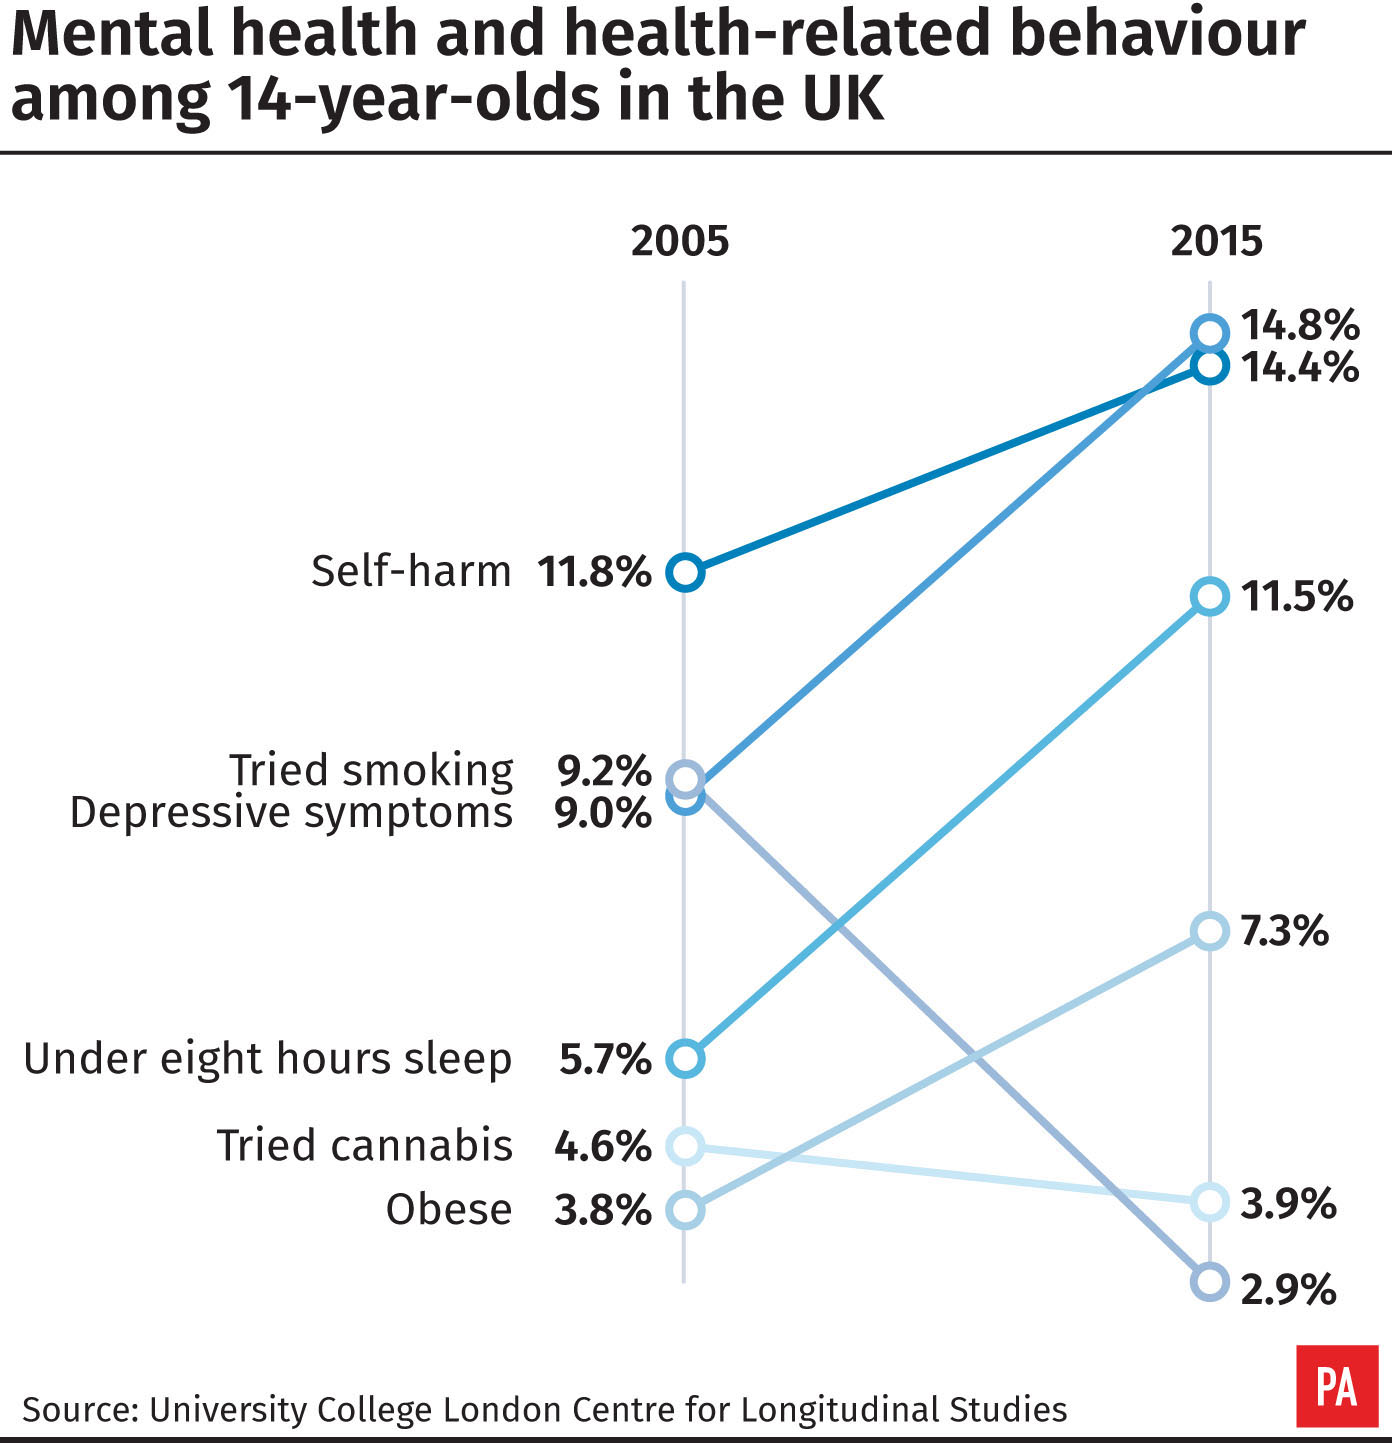 Mental health and health-related behaviour among 14-year-olds in the UK